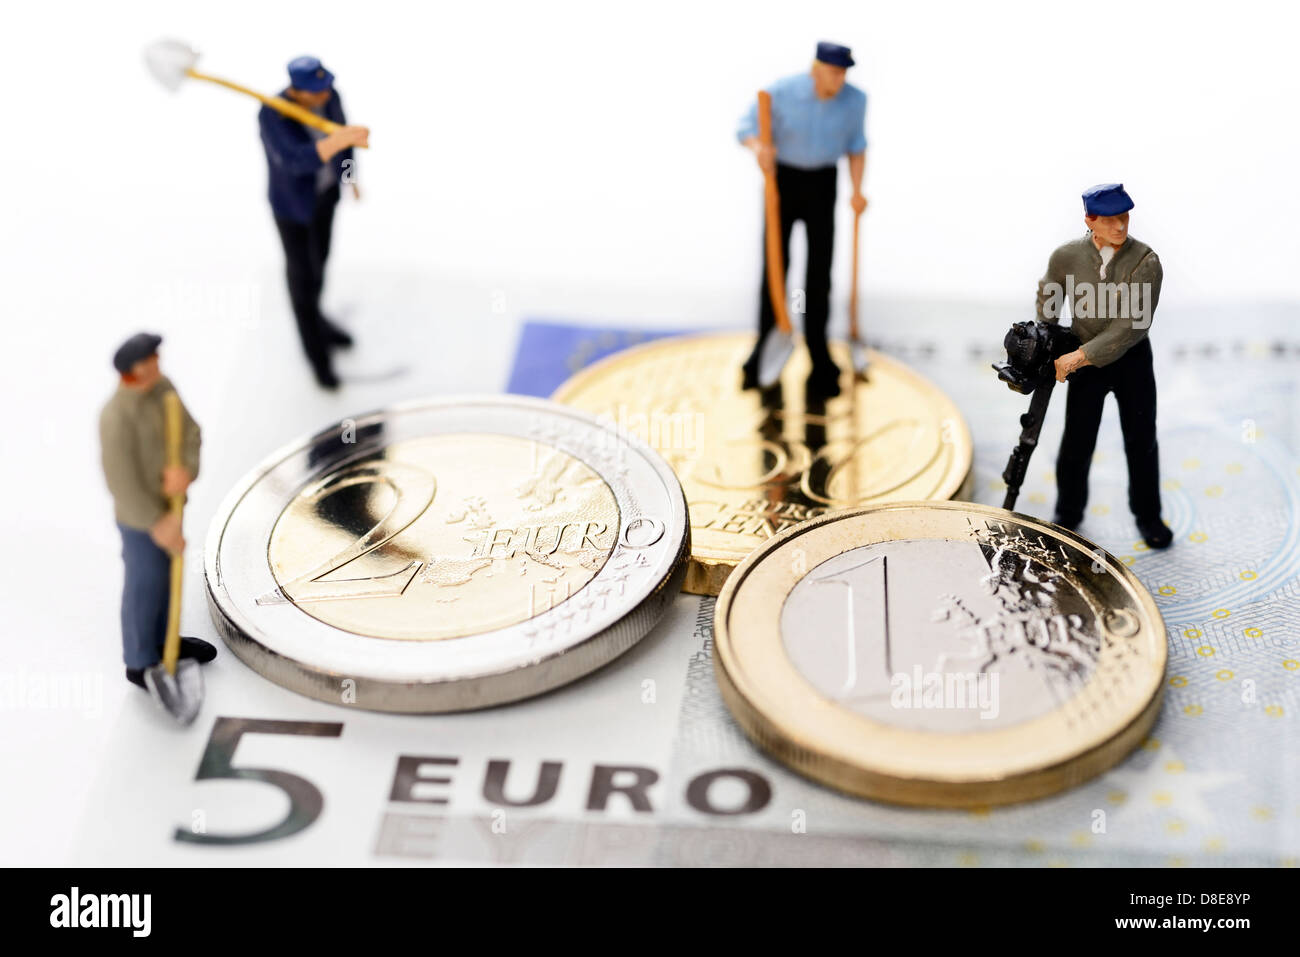 Euro coins and workers Symbolfoto 8,50 EUR minimum wage - Stock Image